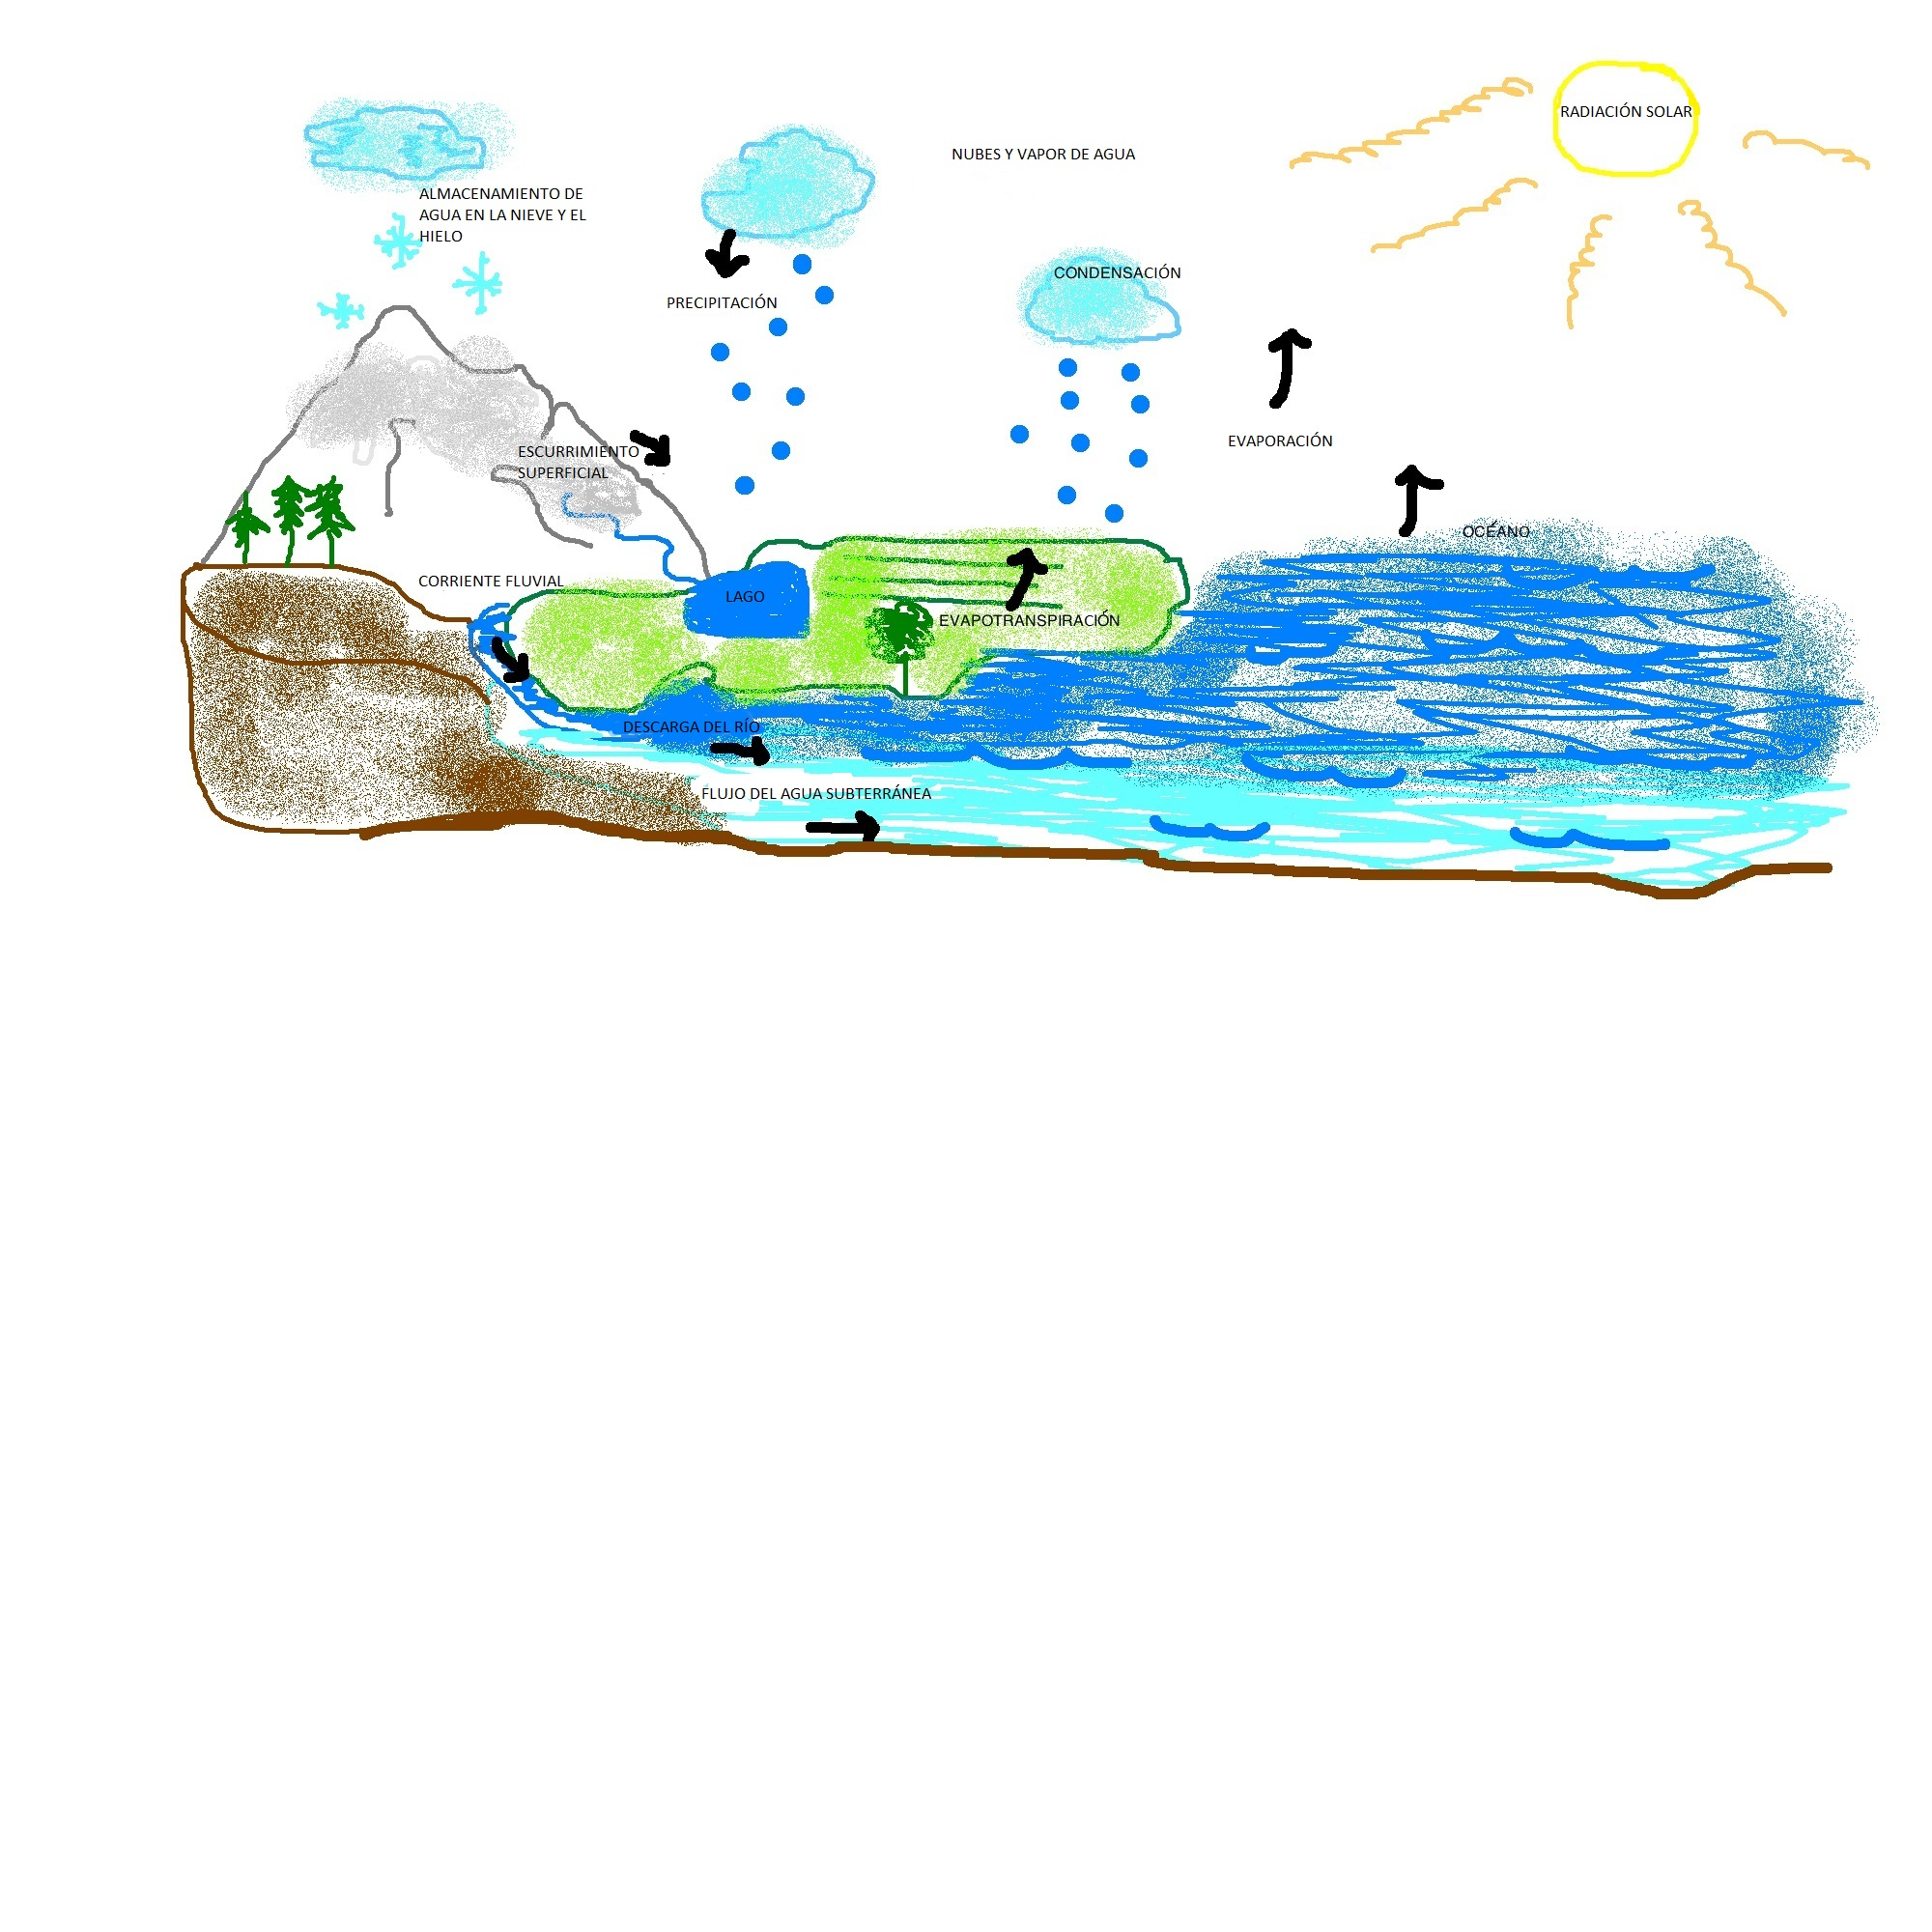 2000x2000 Unit The Water Cycle And Freshwater Resources